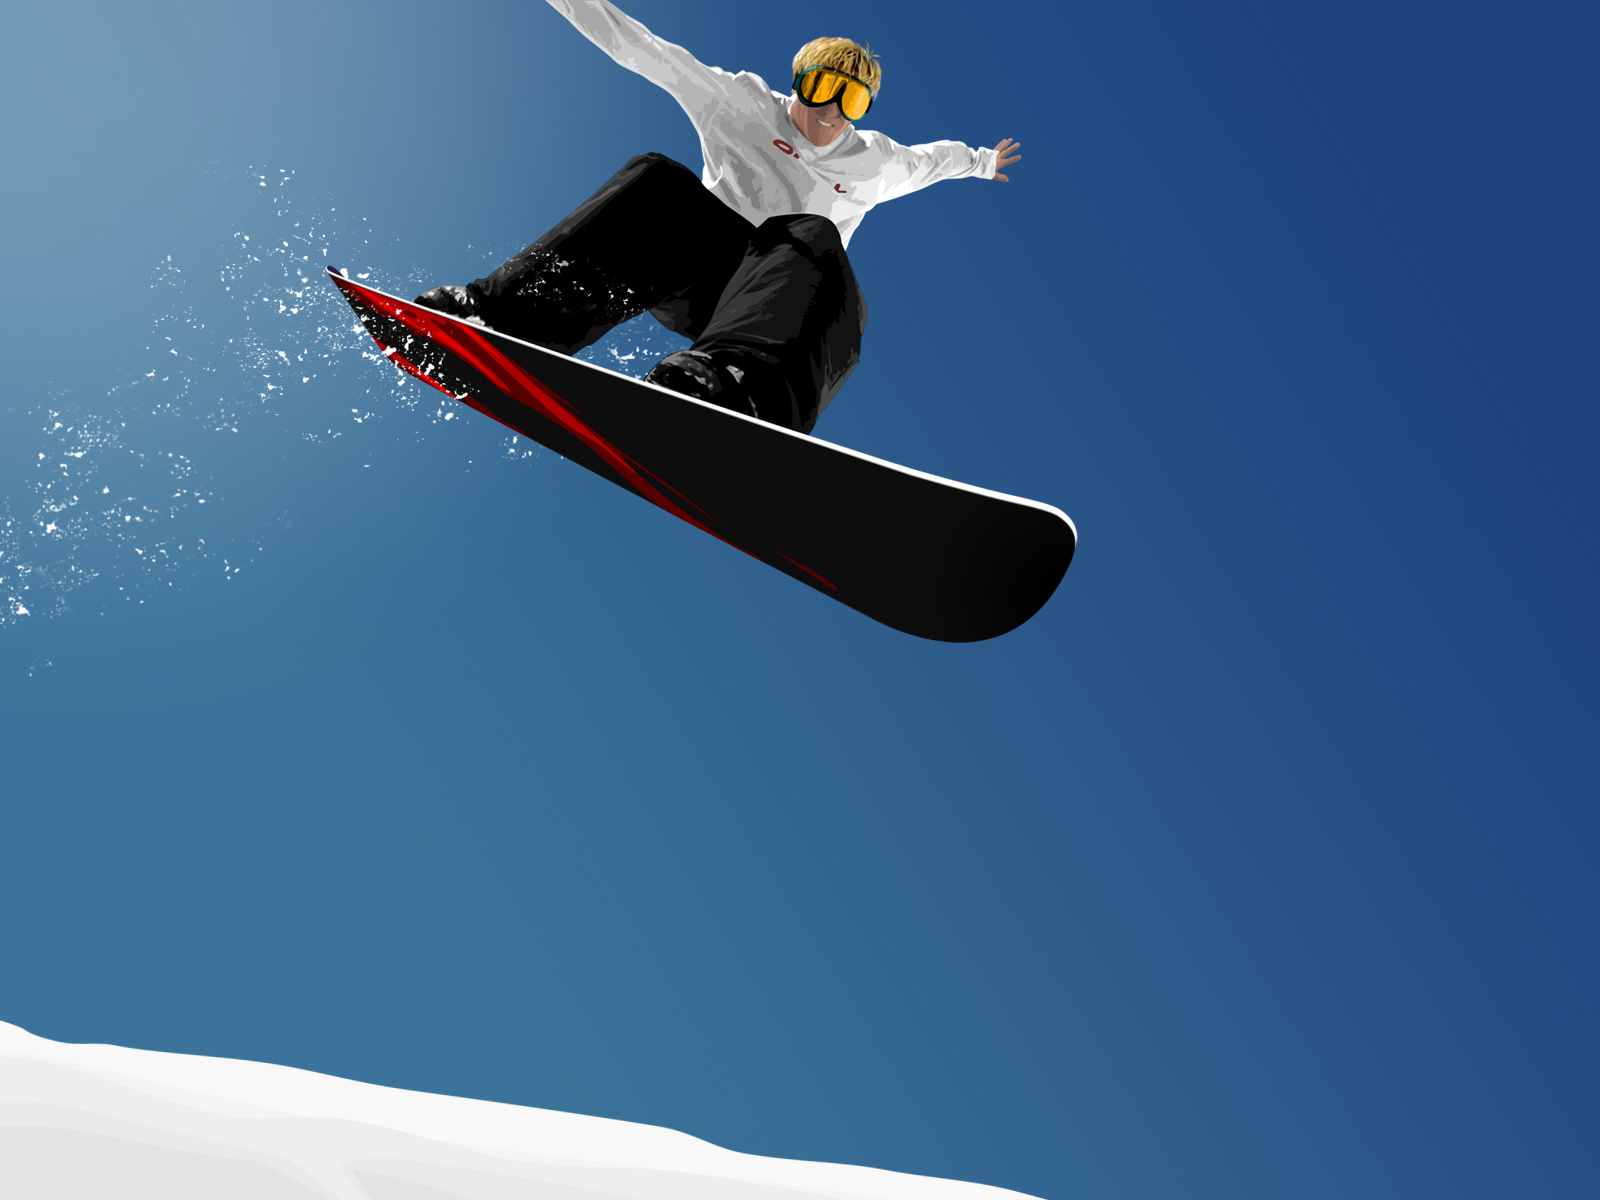 1600x1200 Snowboarding desktop wallpapers and stock photos